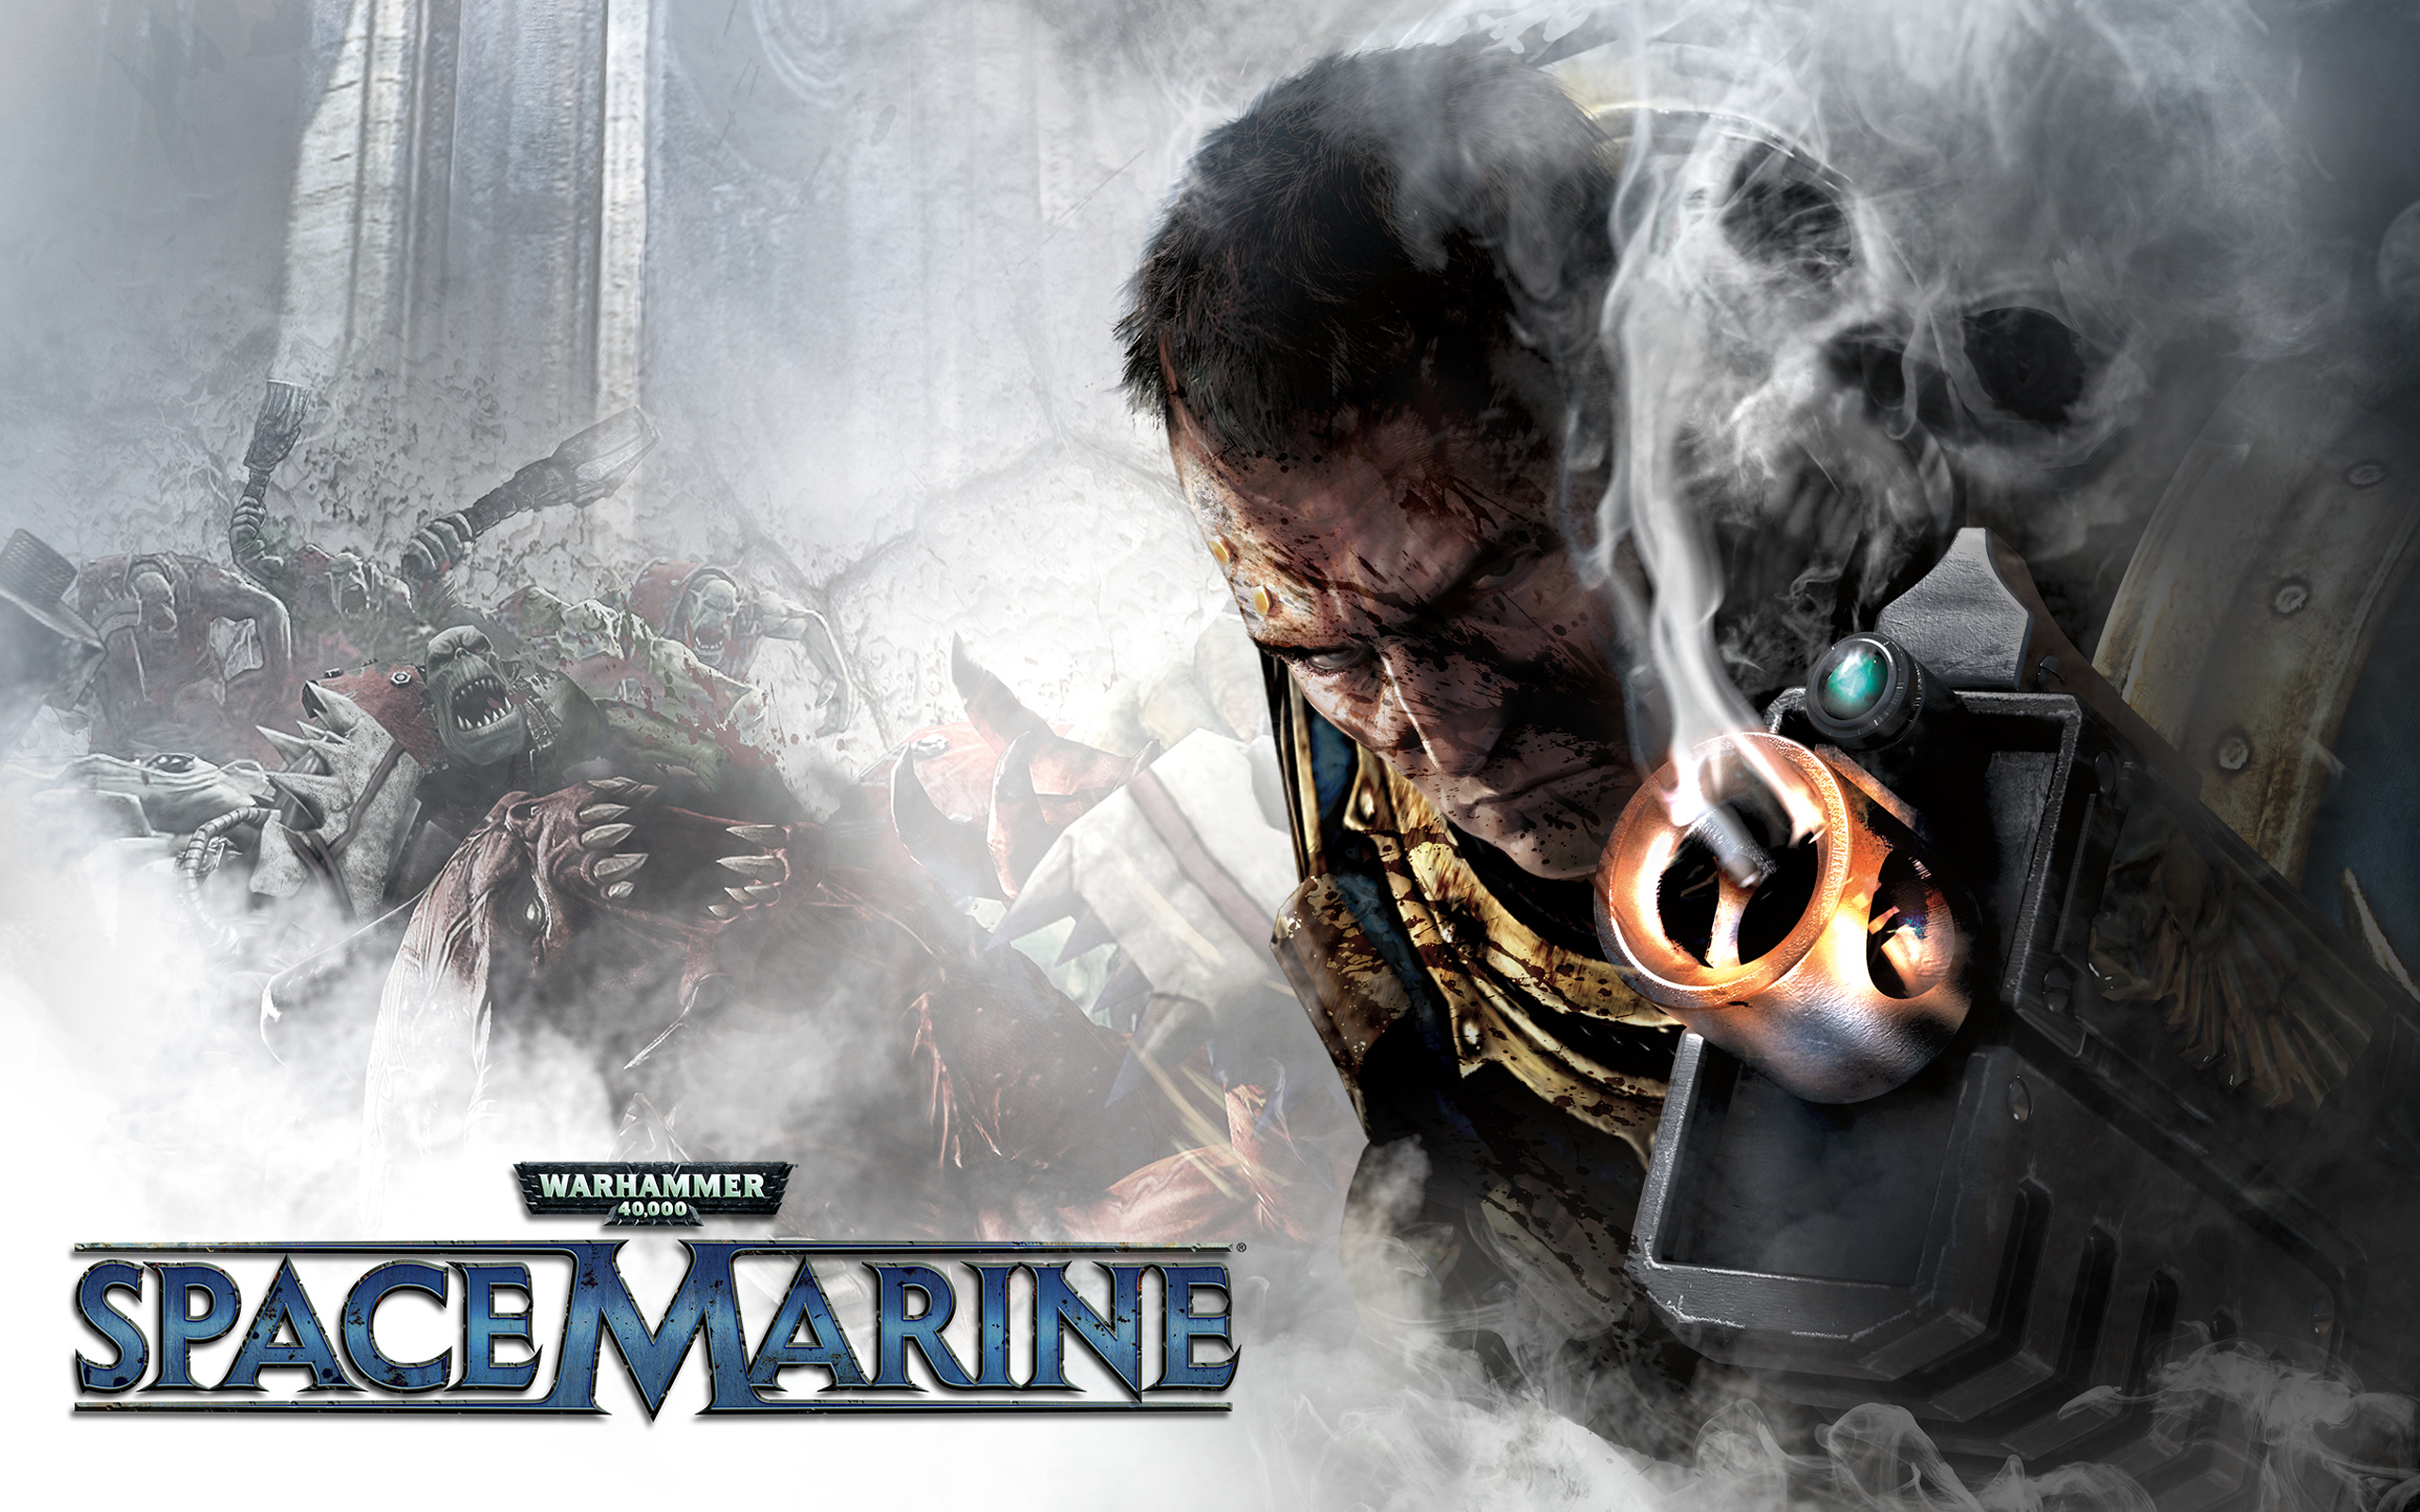 Marine 4k Wallpapers For Your Desktop Or Mobile Screen Free And